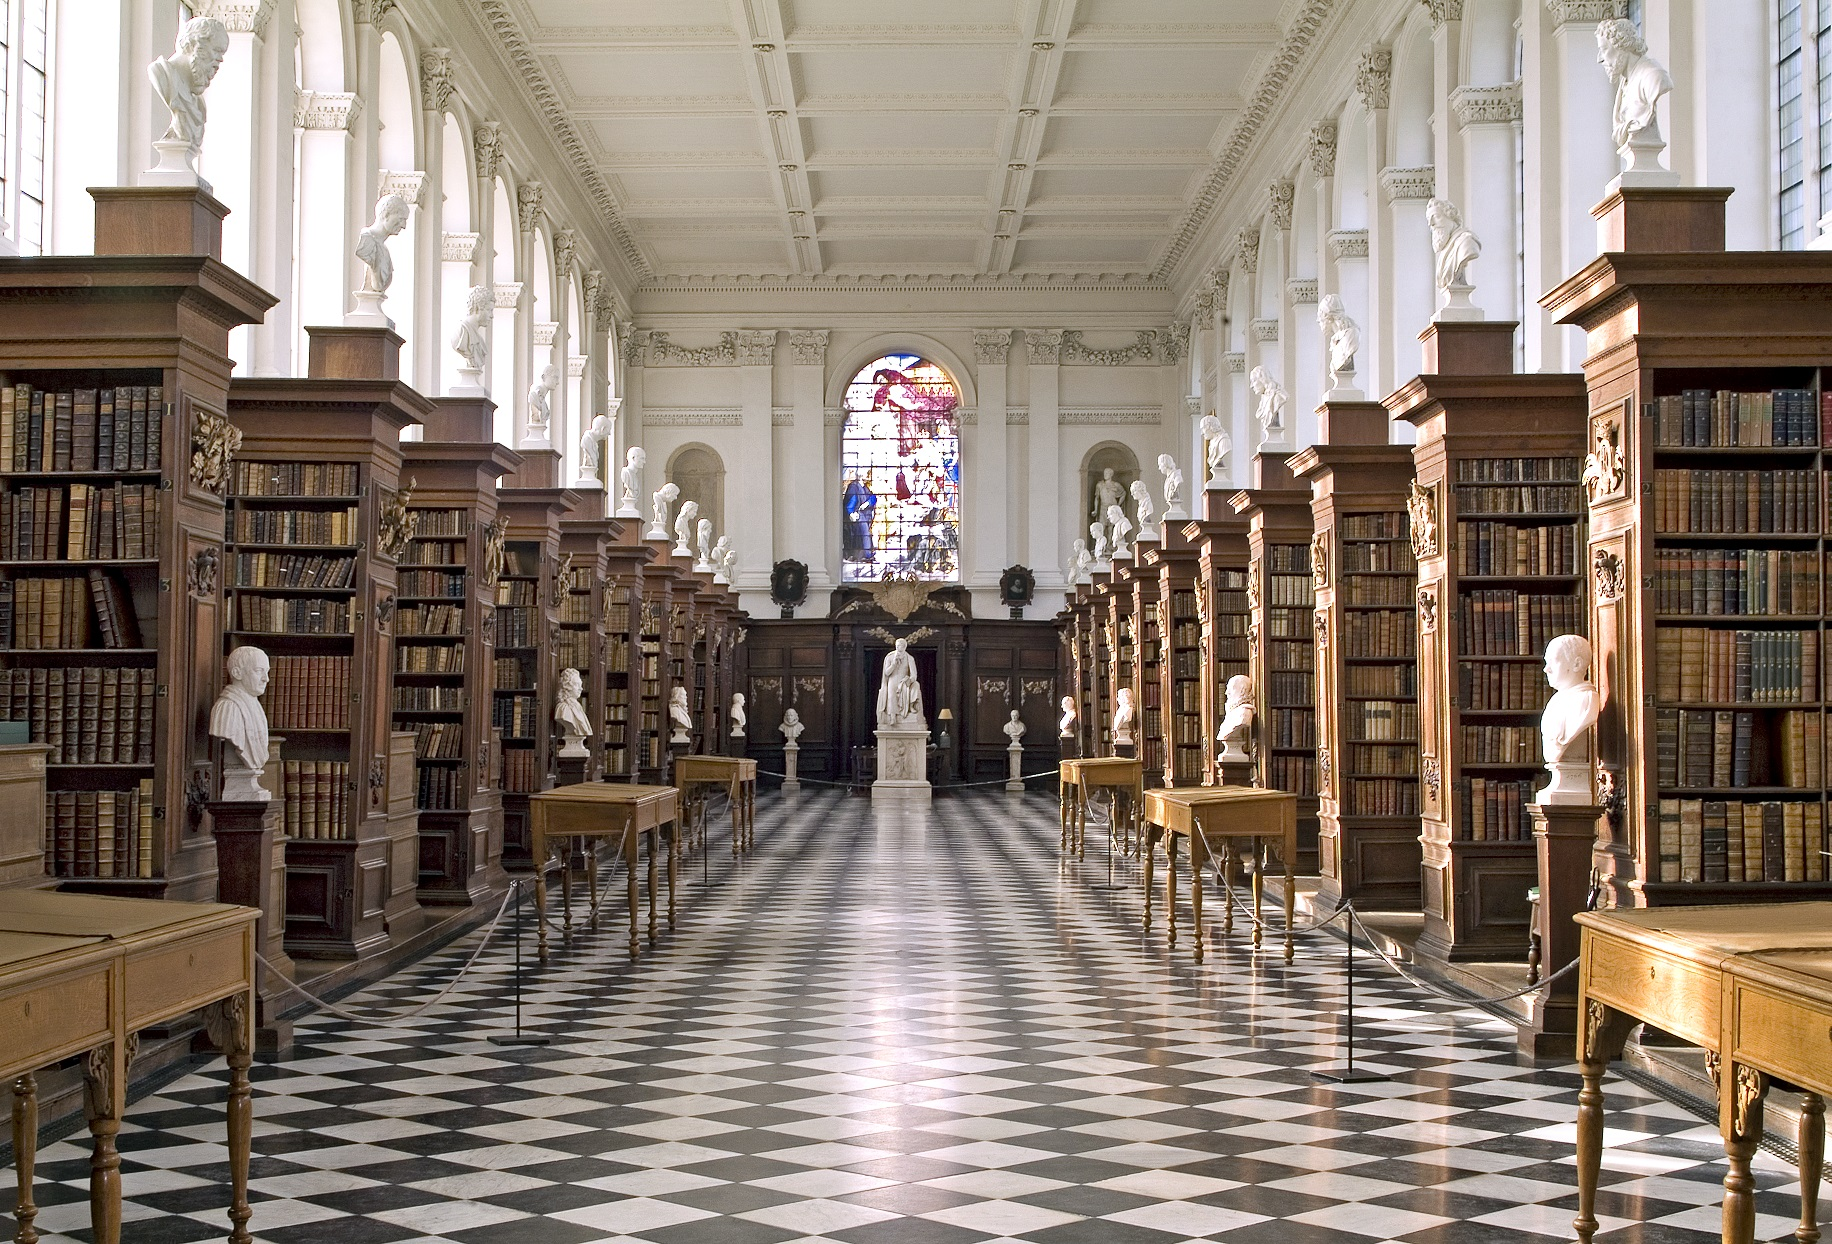 Image of the Wren Library, Trinity College